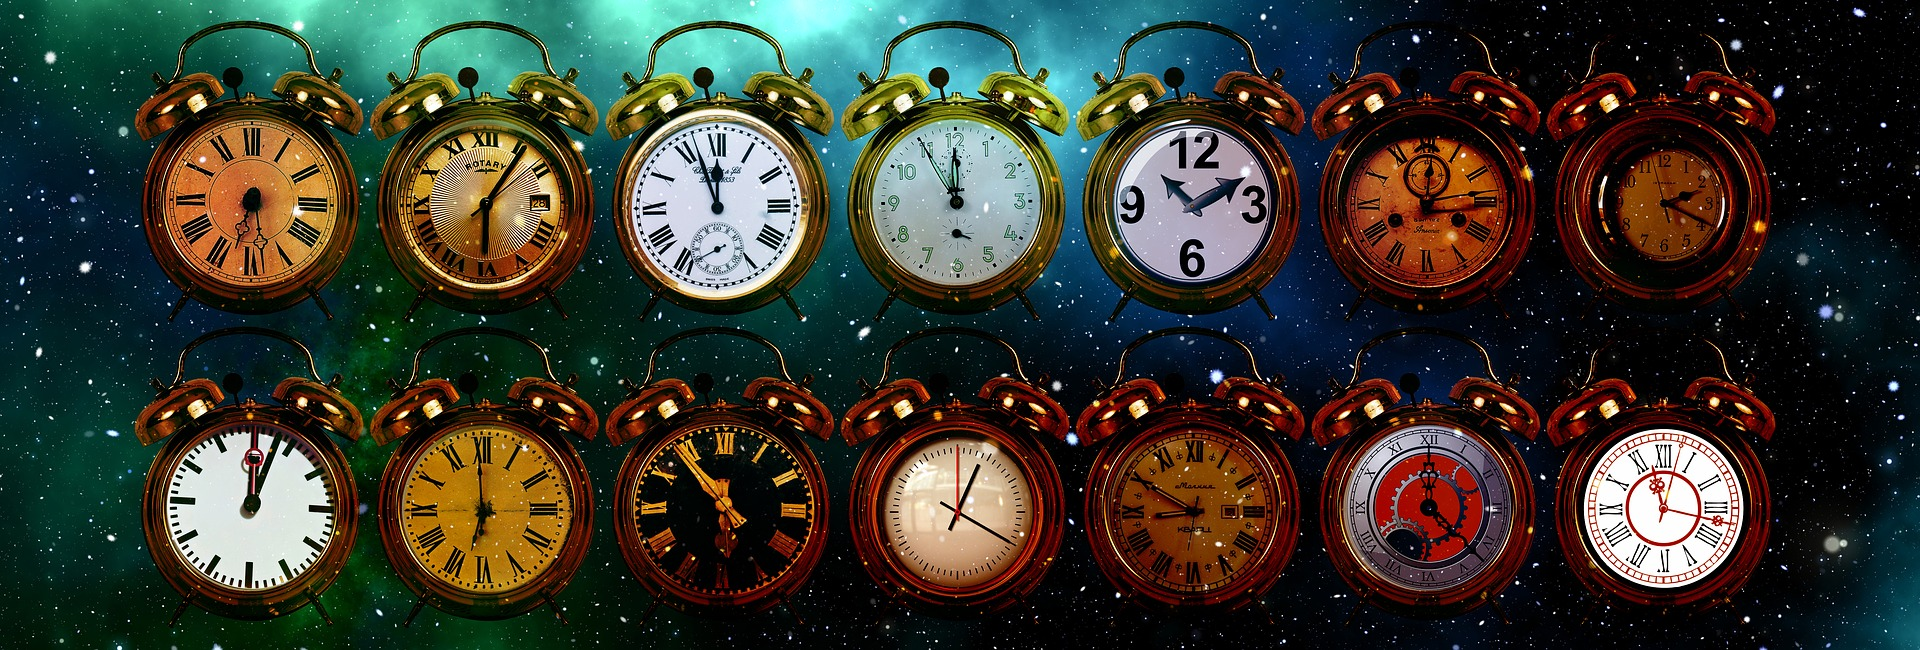 SAFETY STUDY: Does the time of day or age correspond to lower fatality risk?